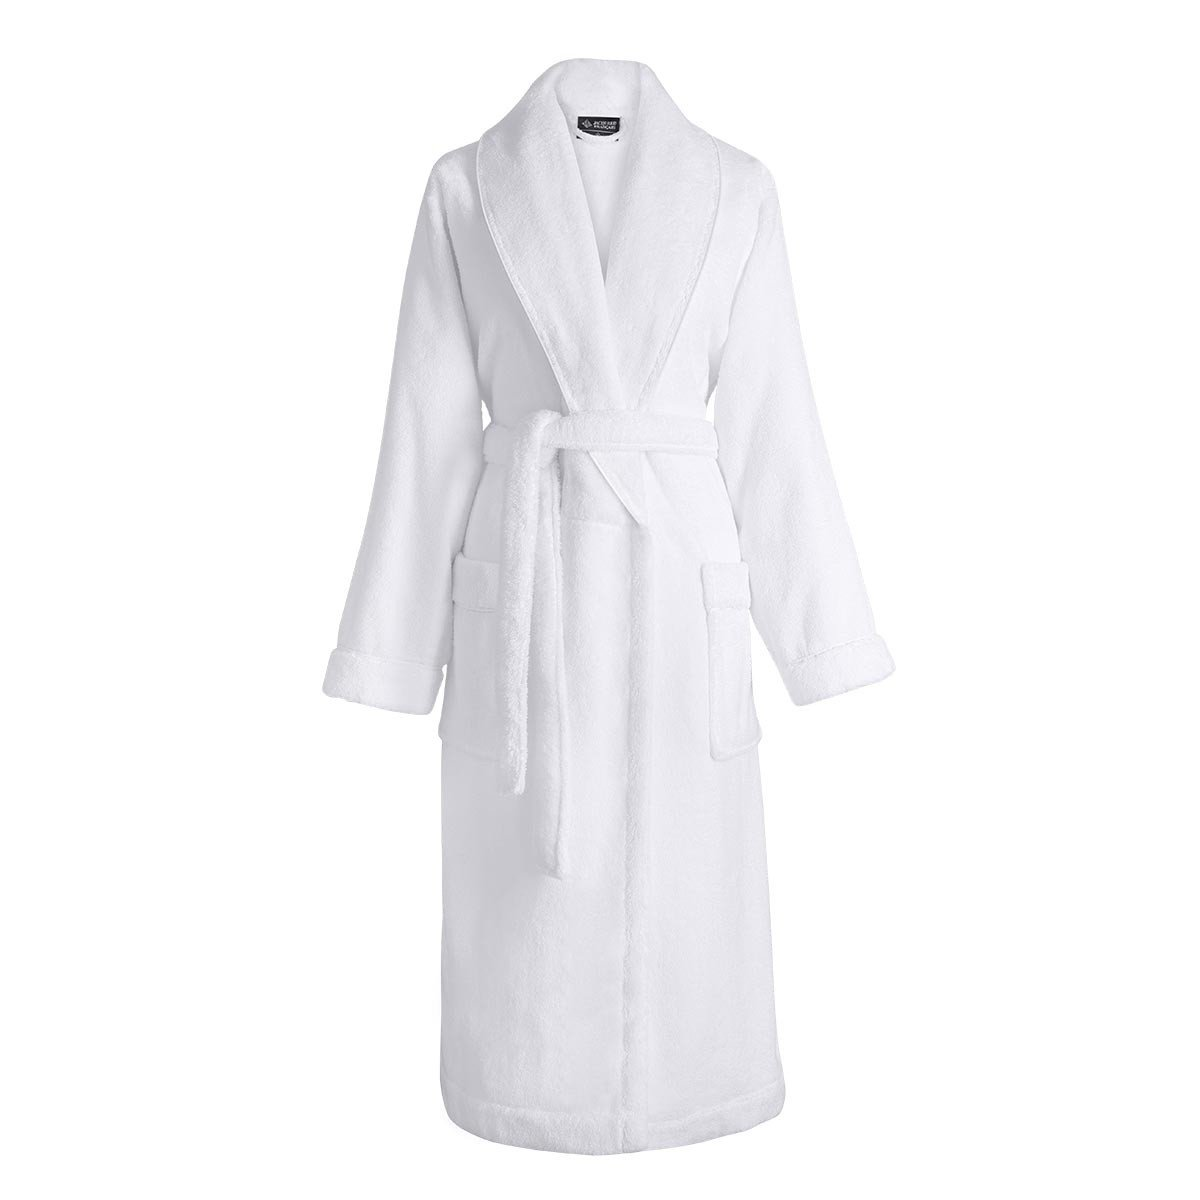 Caresse White Bathrobe by Le Jacquard Français | Fig Linens